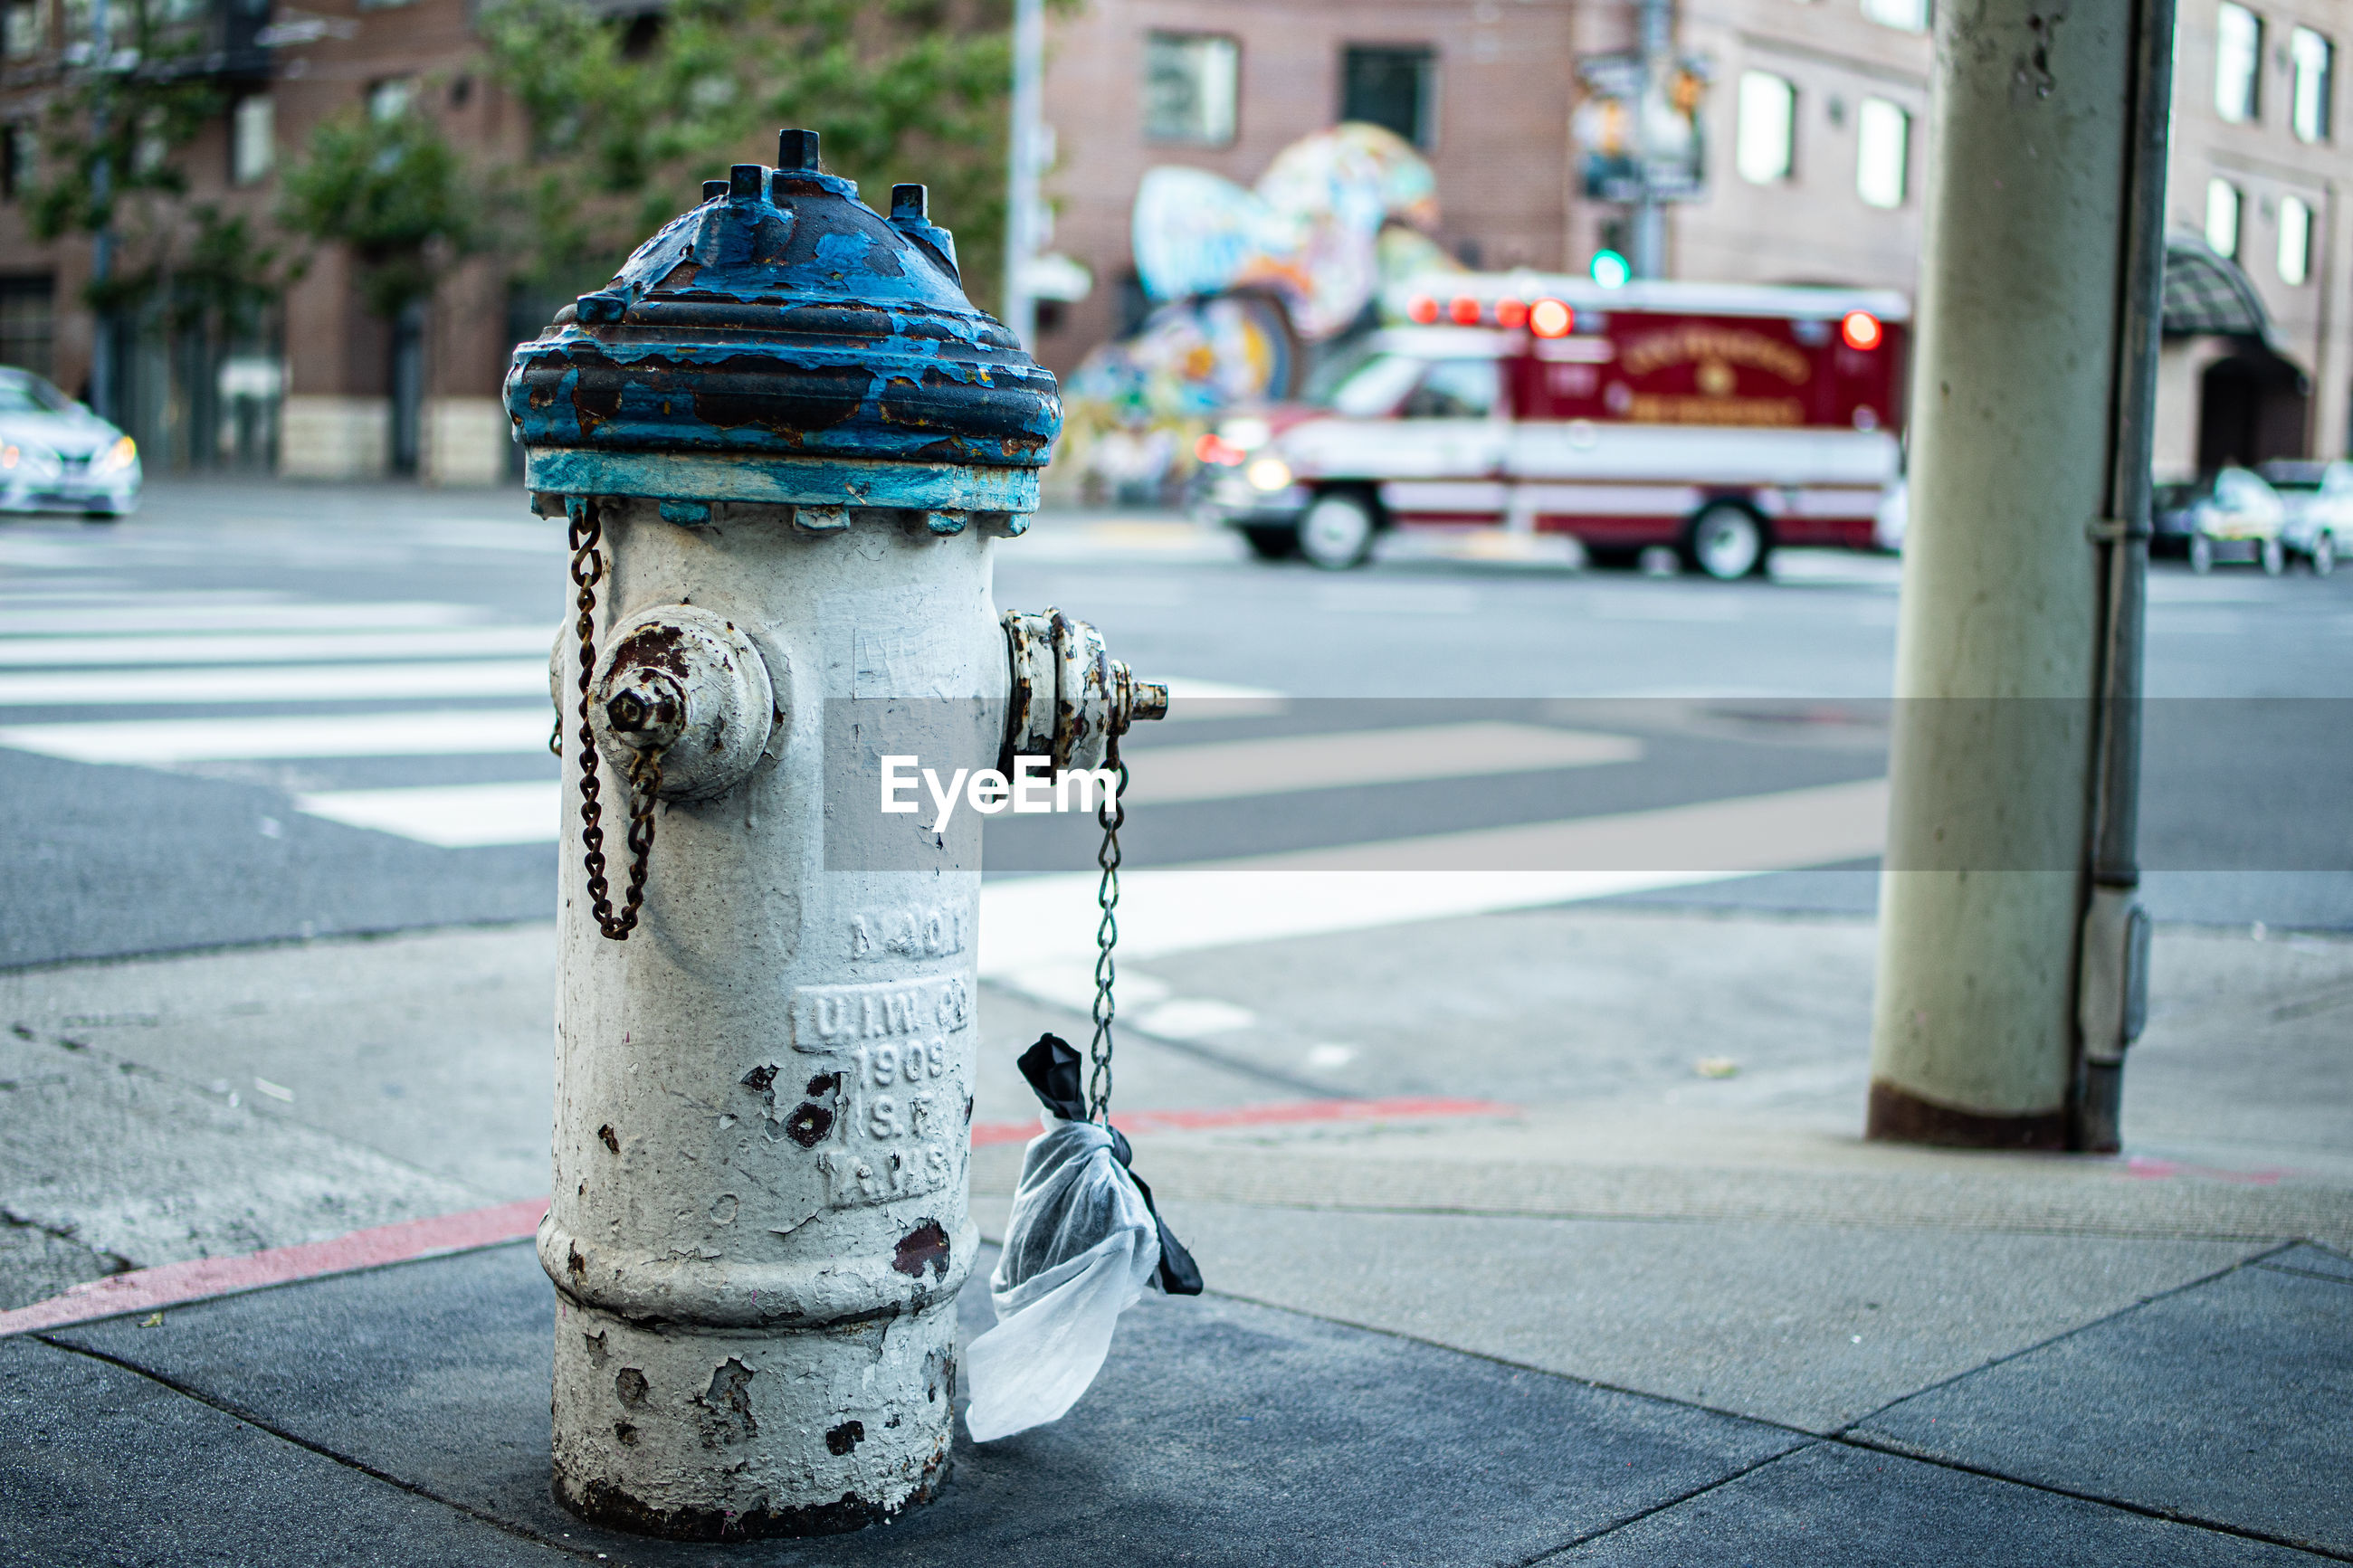 FIRE HYDRANT ON STREET